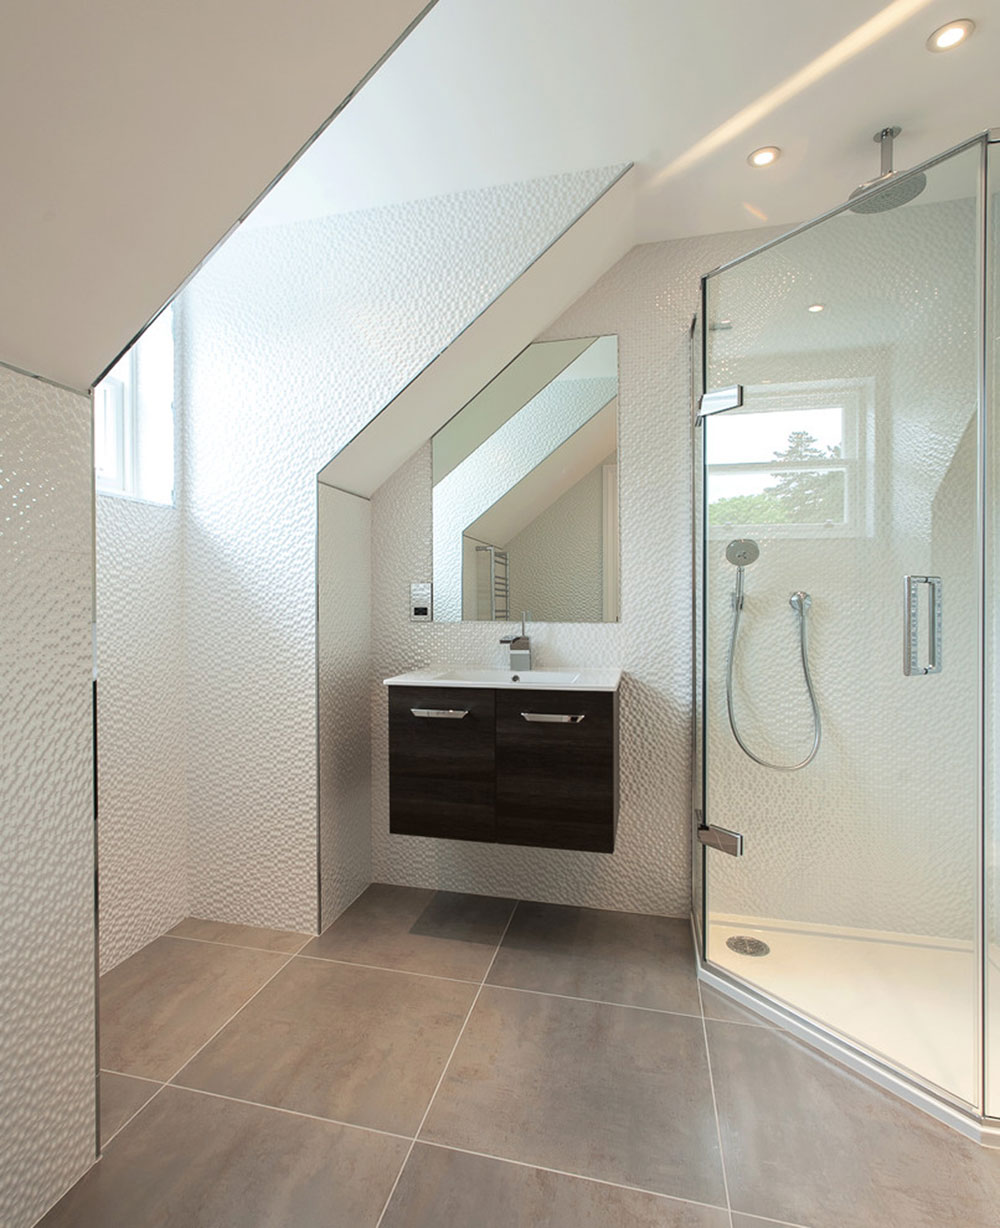 Excellent Making Your Bathroom Stylish Should Be A Priority SL34